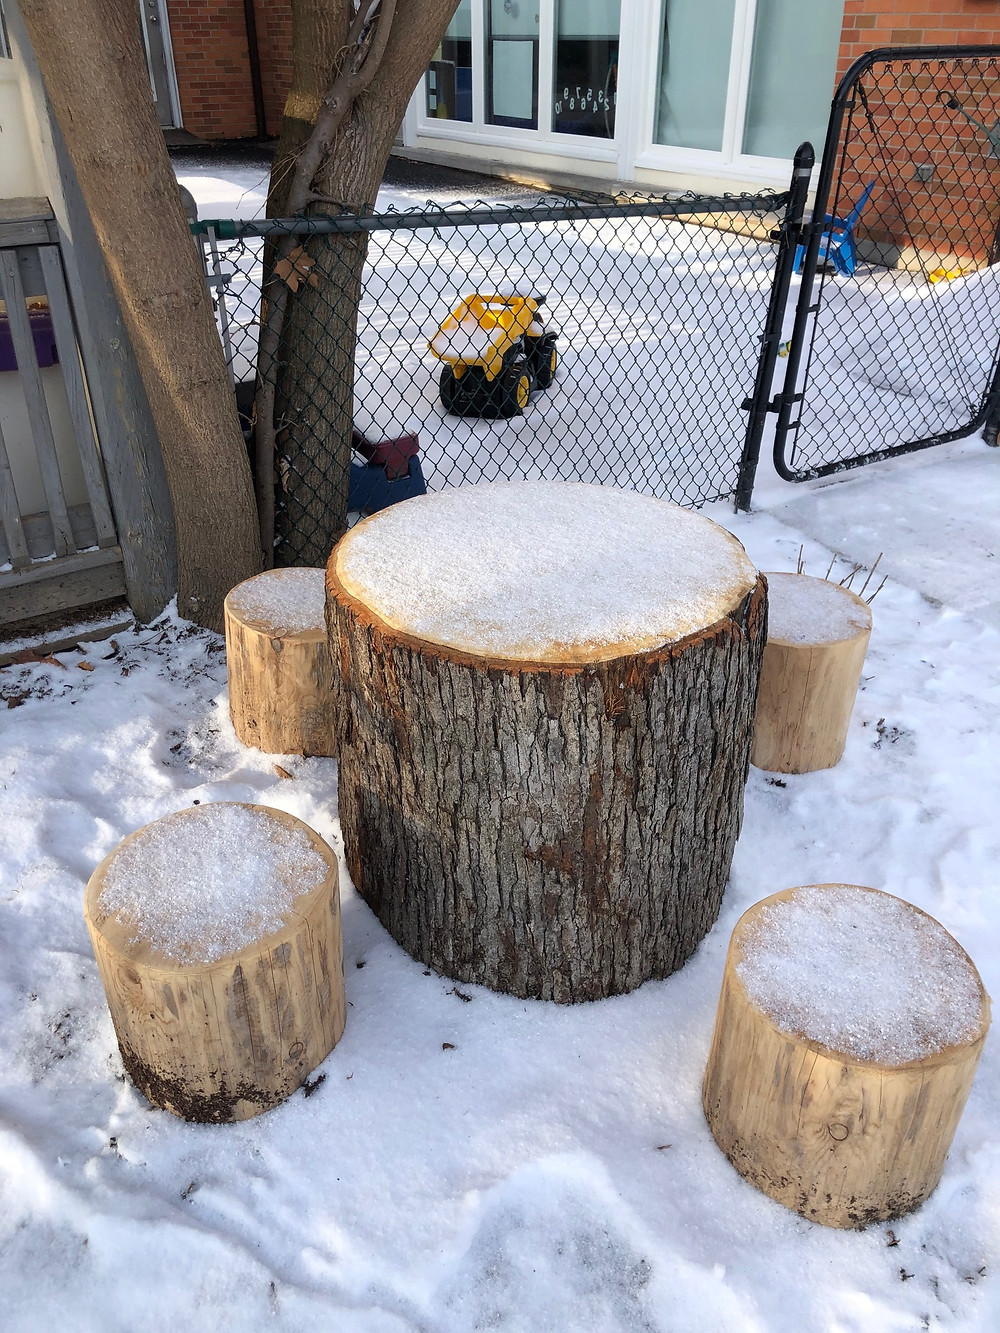 Stump table and chairs